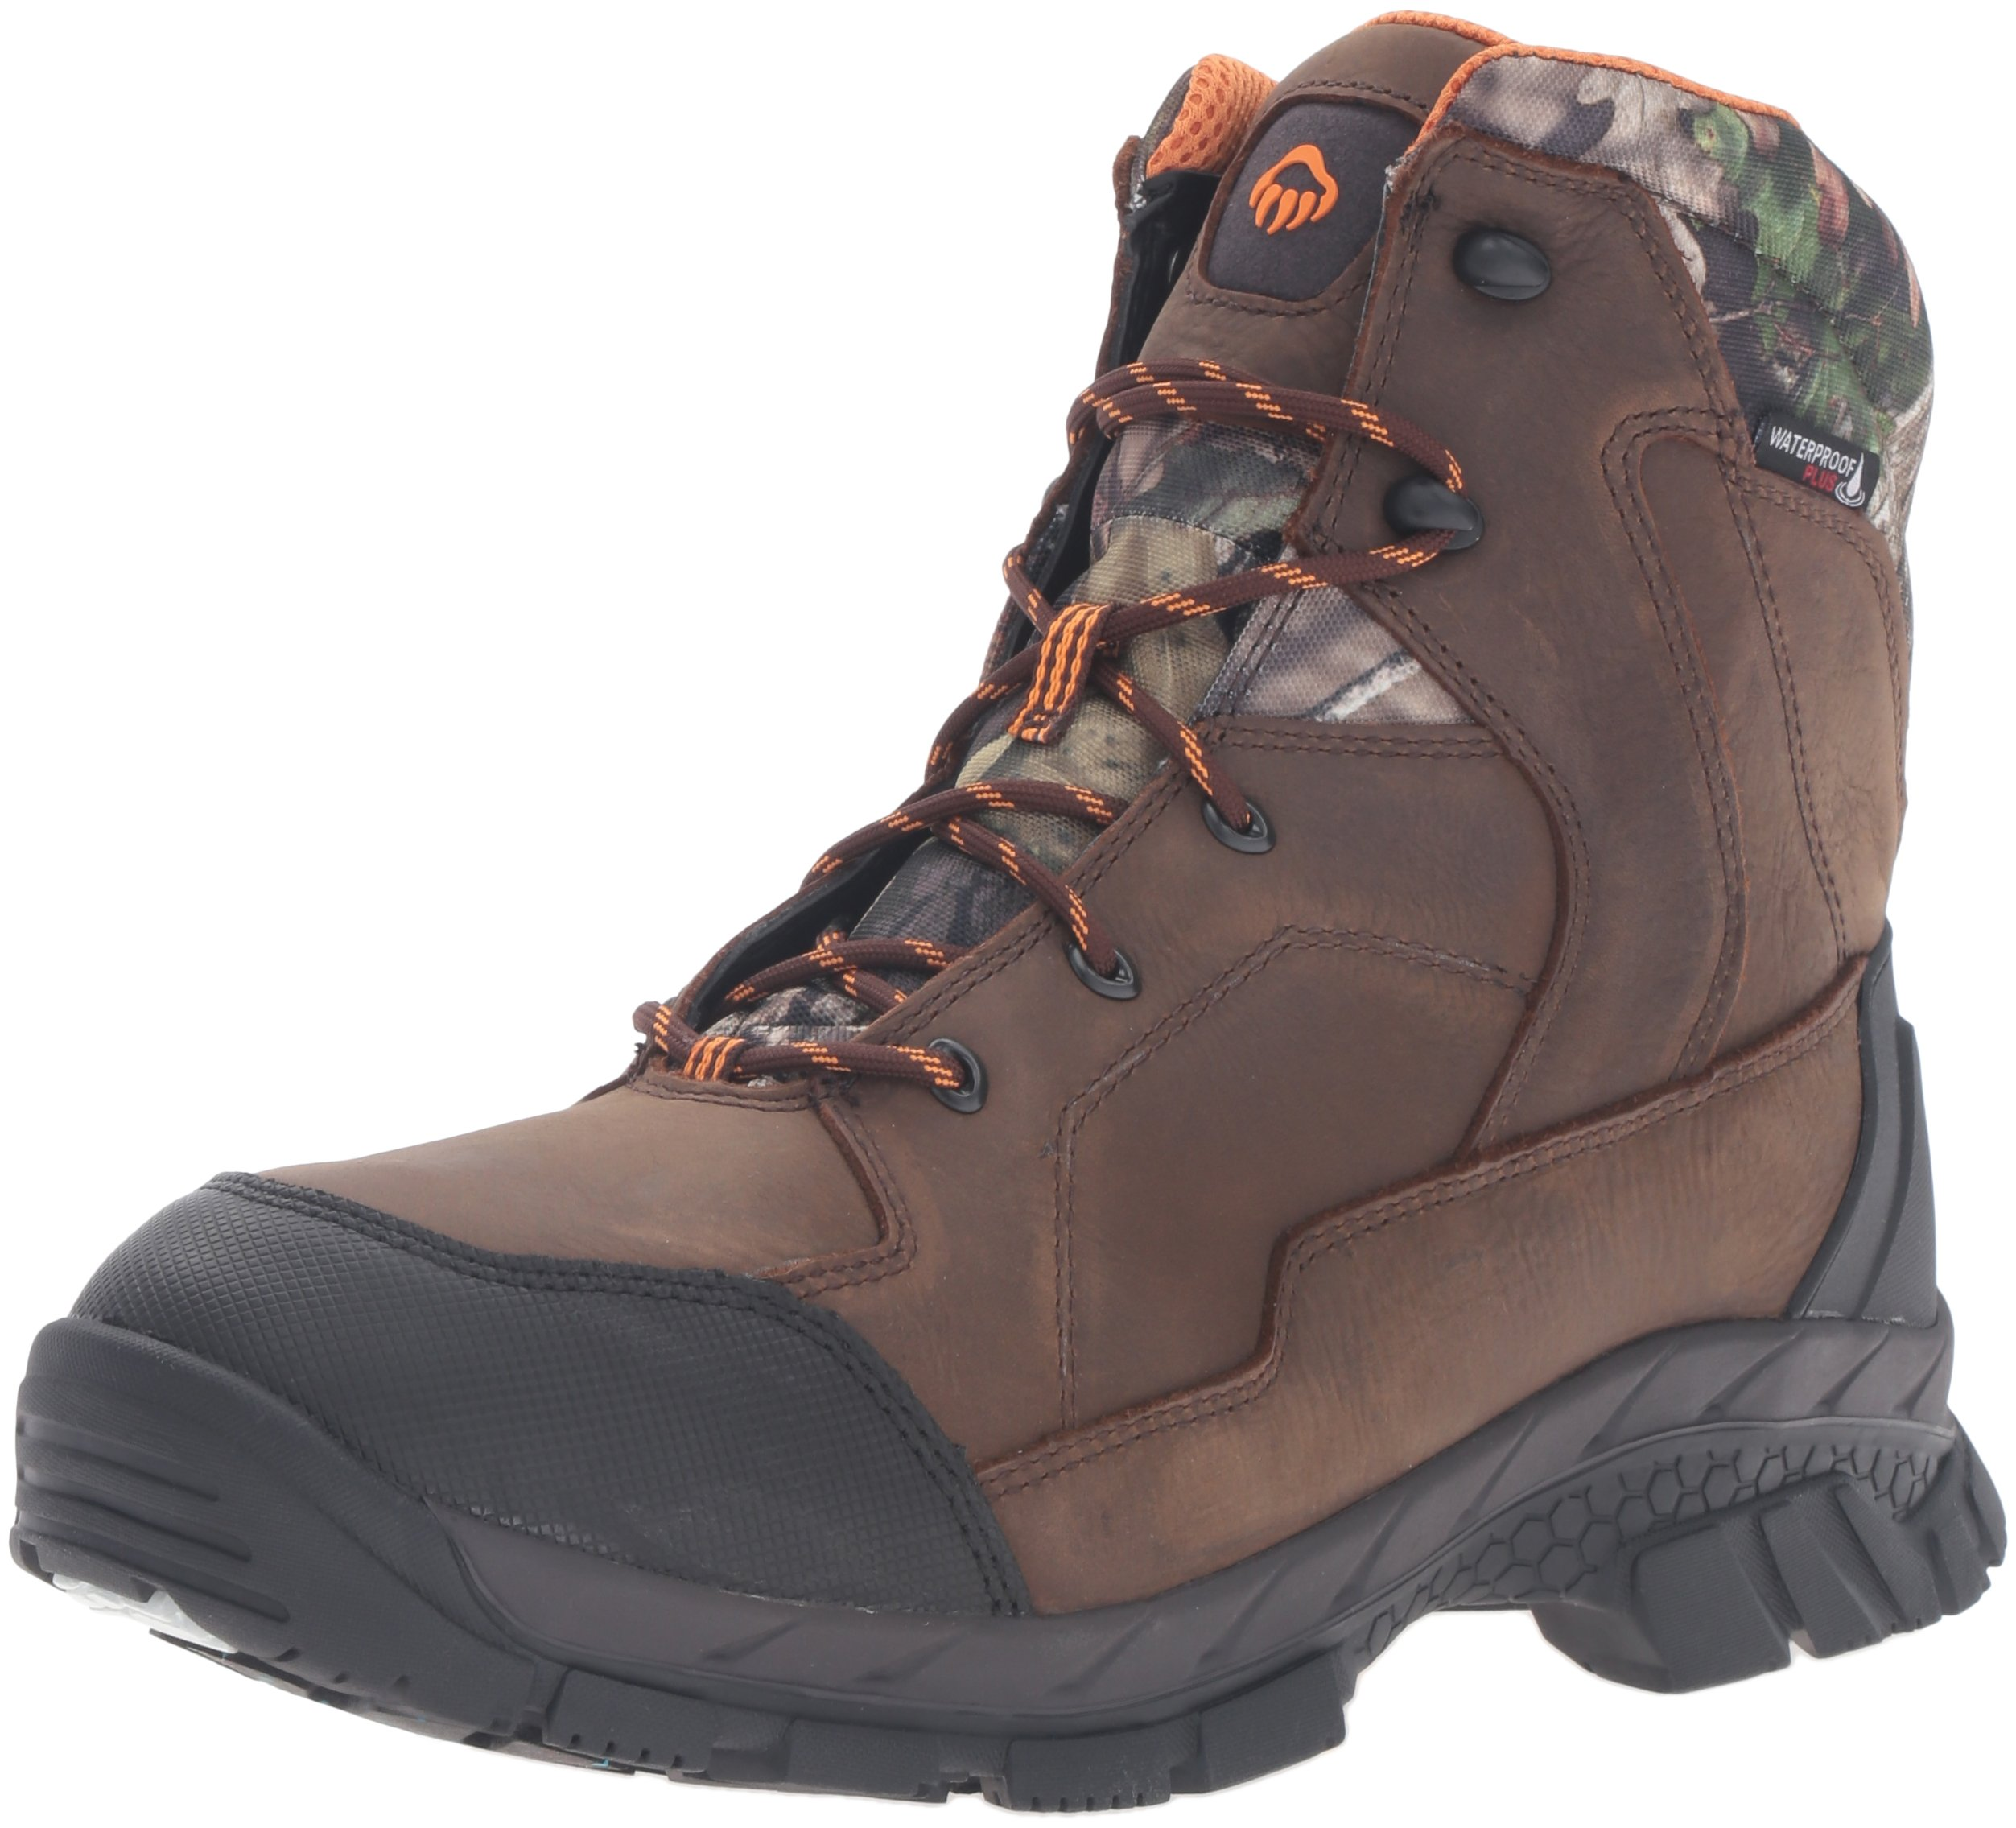 Wolverine Men's Crossbuck LX Insulated Waterproof Hunting Boot, Summer Brown, 13 M US